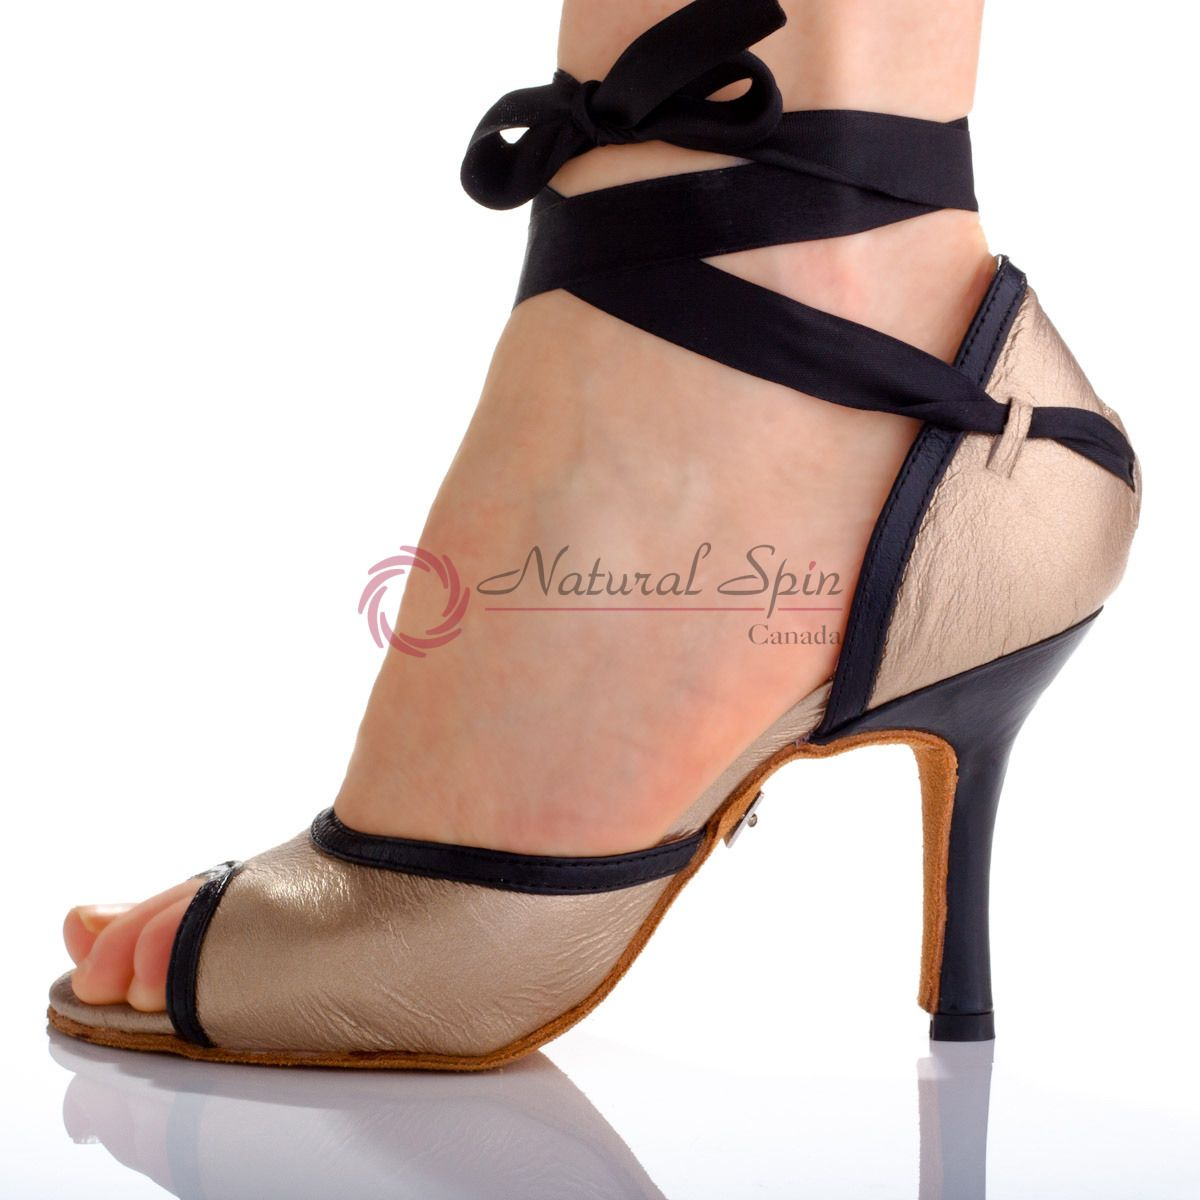 86c28331d Natural Spin Designer Salsa Shoes/Tango Shoes/Fashion Shoes(Small Open Toe,  Leat